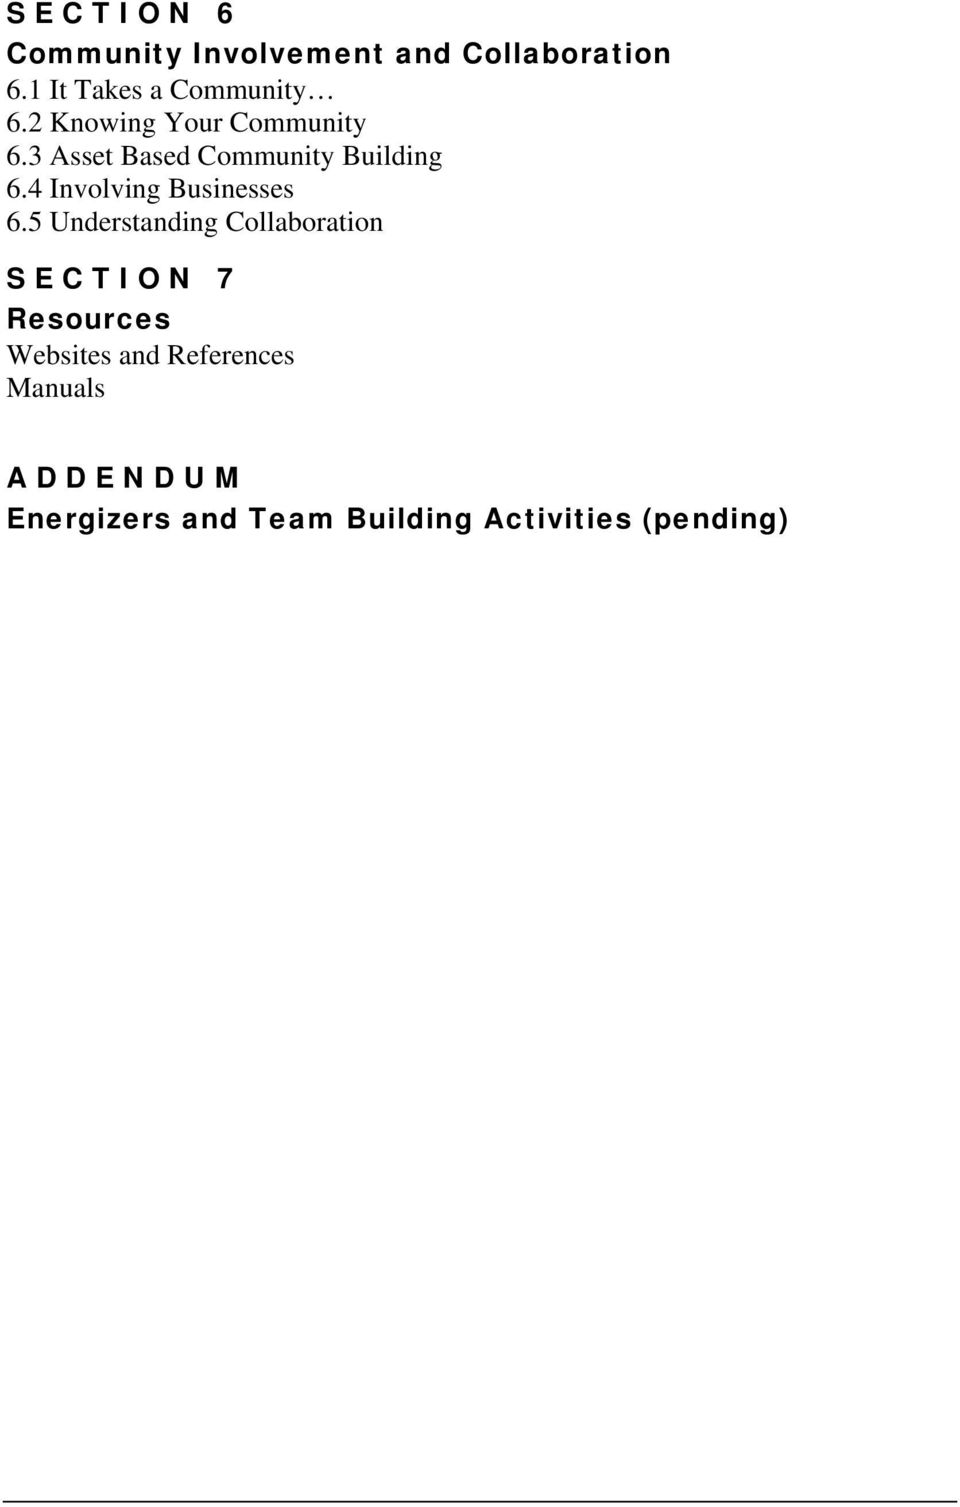 3 Asset Based Community Building 6.4 Involving Businesses 6.